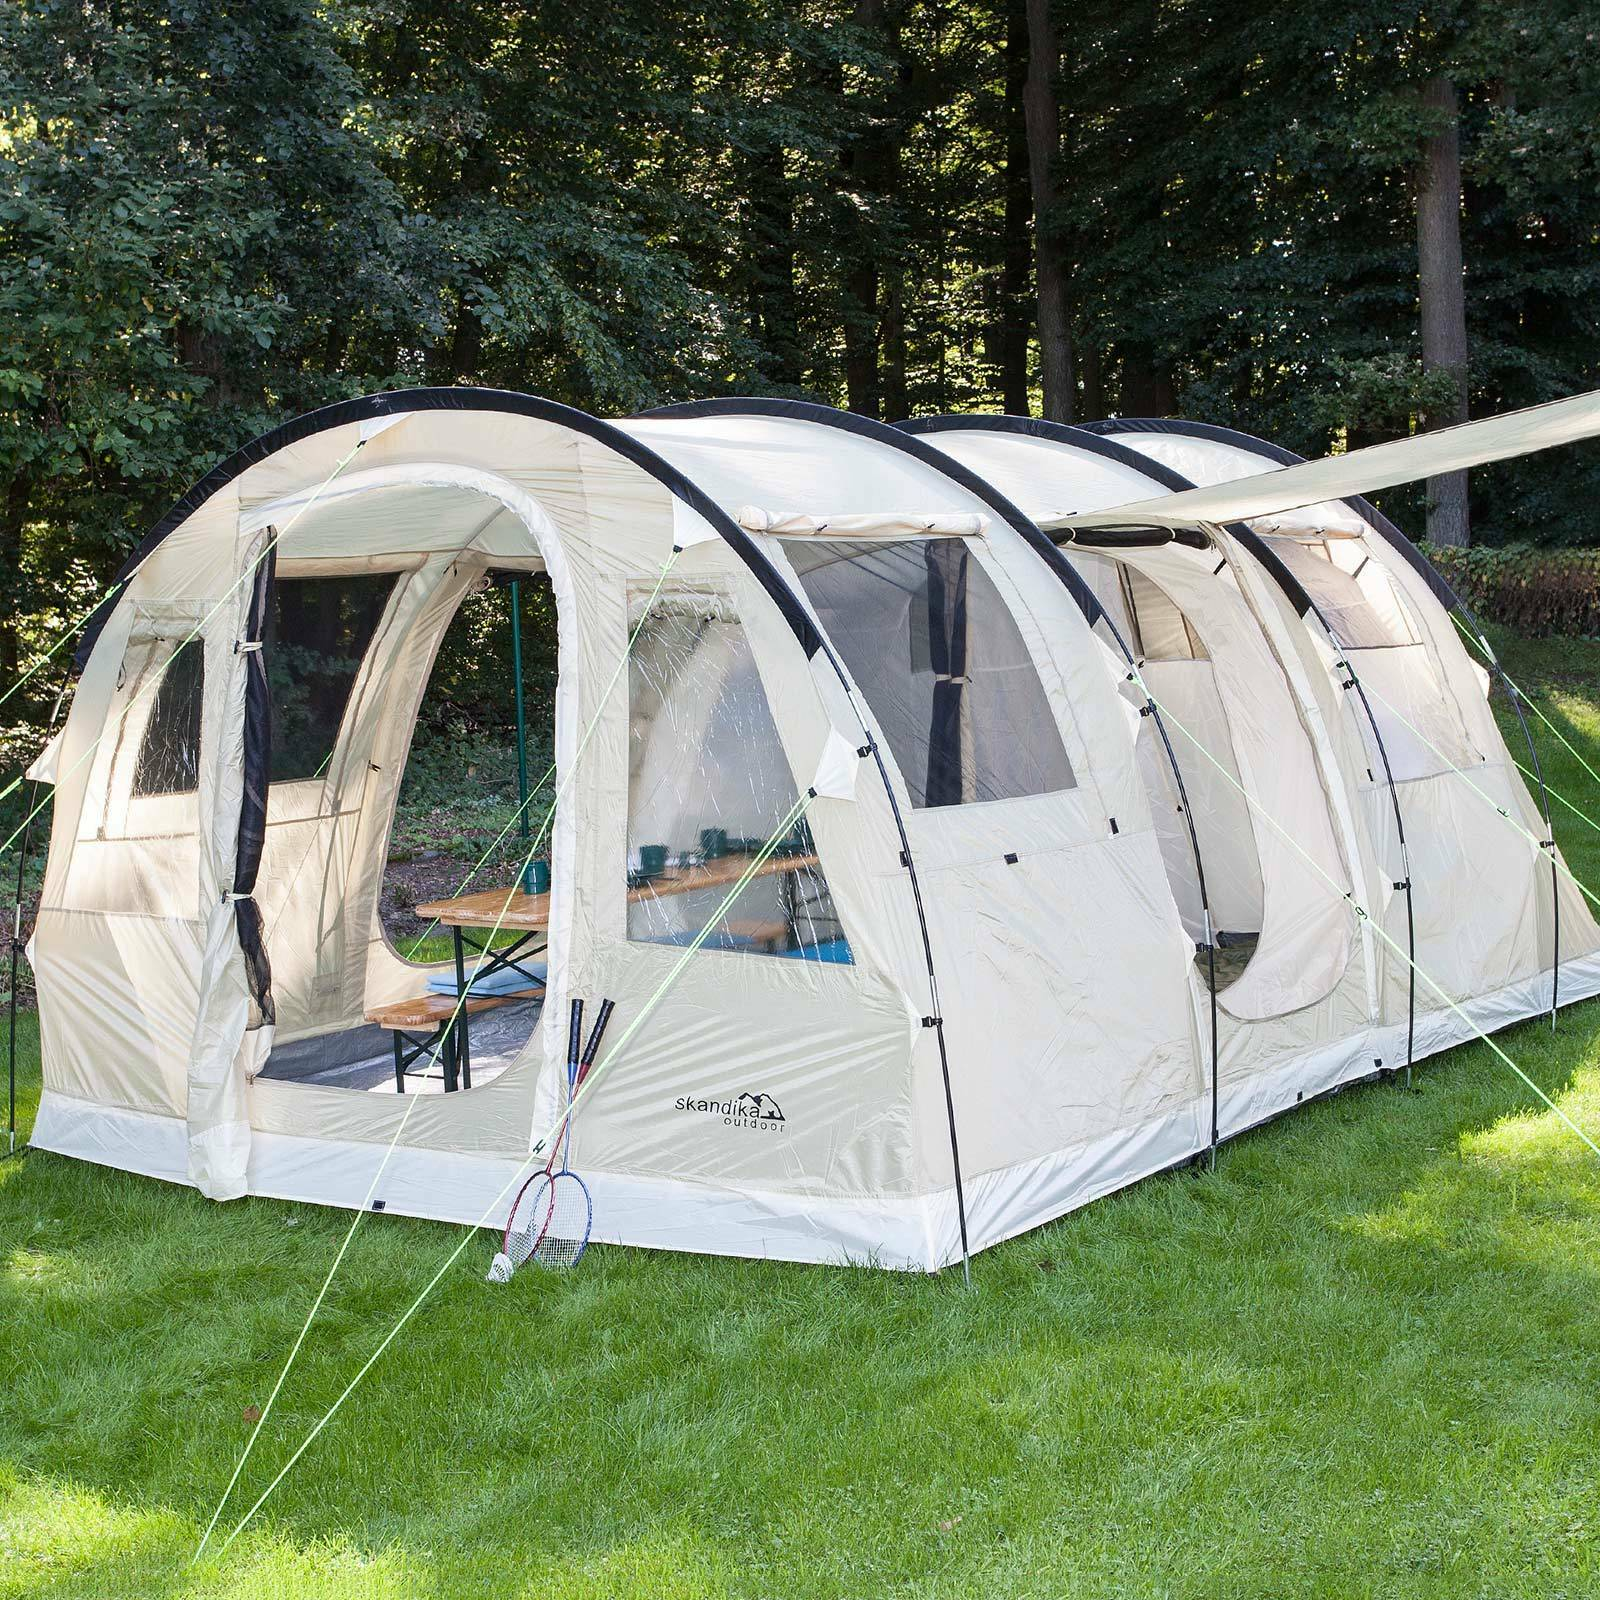 Skandika Gotland 4 person tent camping family tunnel mosquito beig new